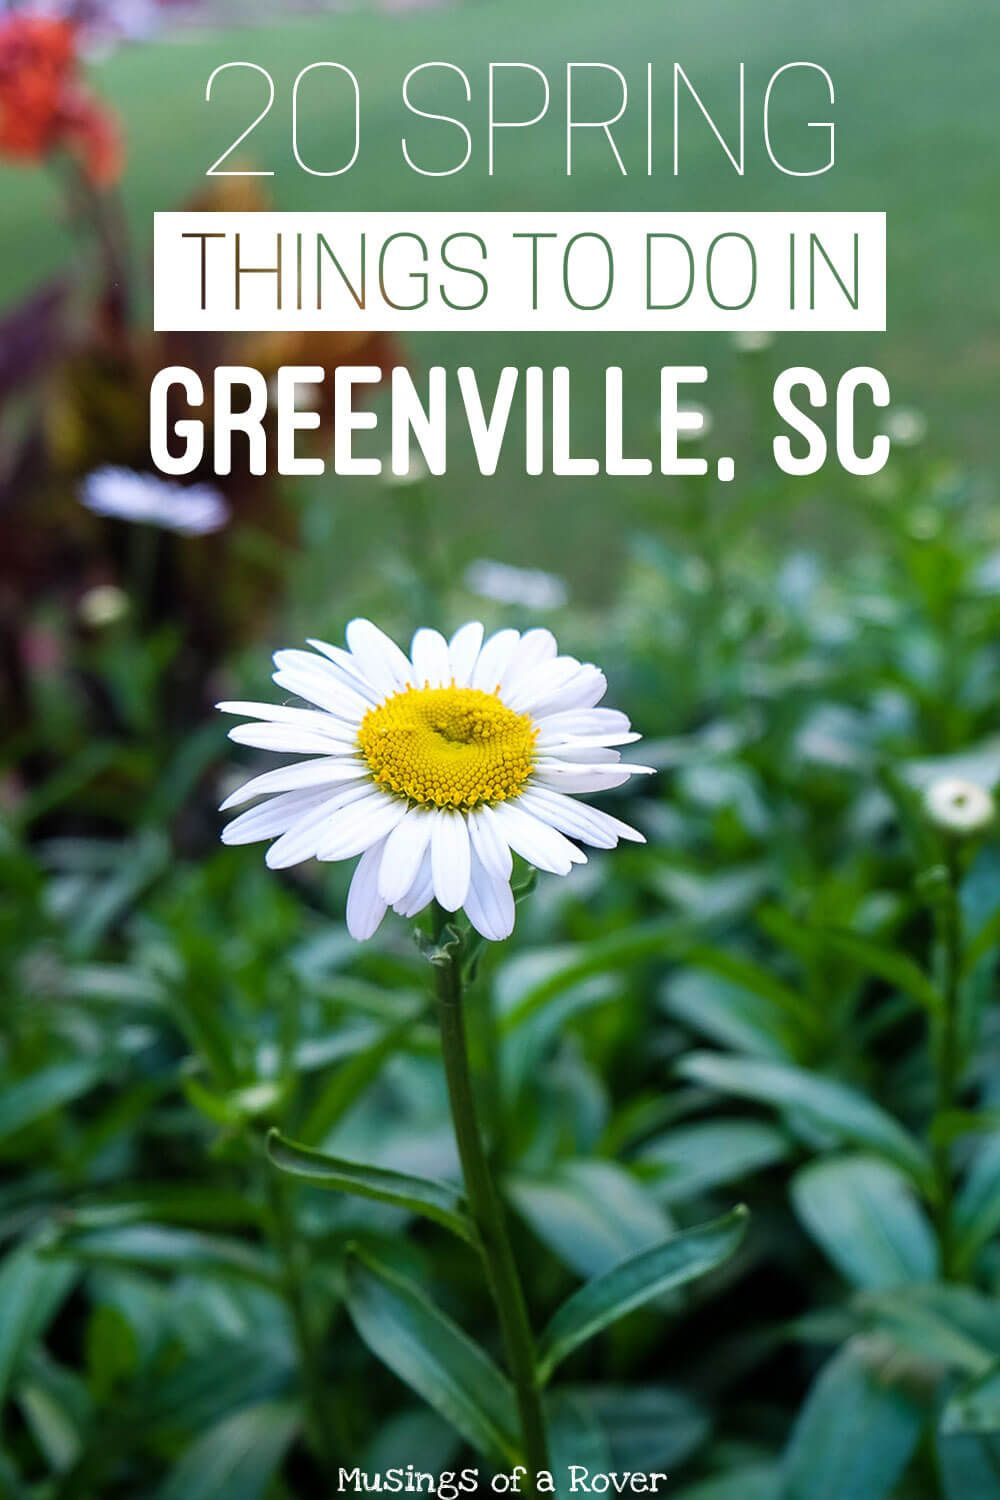 Traveling to Greenville, South Carolina this spring? Or are you a local looking for something to do this weekend? Here are 20 things to keep you busy! Everything from holiday celebrations and festivals to everyday activities like biking the swamp rabbit trail, nearby day-trips to chimney rock, picking strawberries, and more. travel tips, travel advice, greenville sc things to do, greenville south carolina things to do